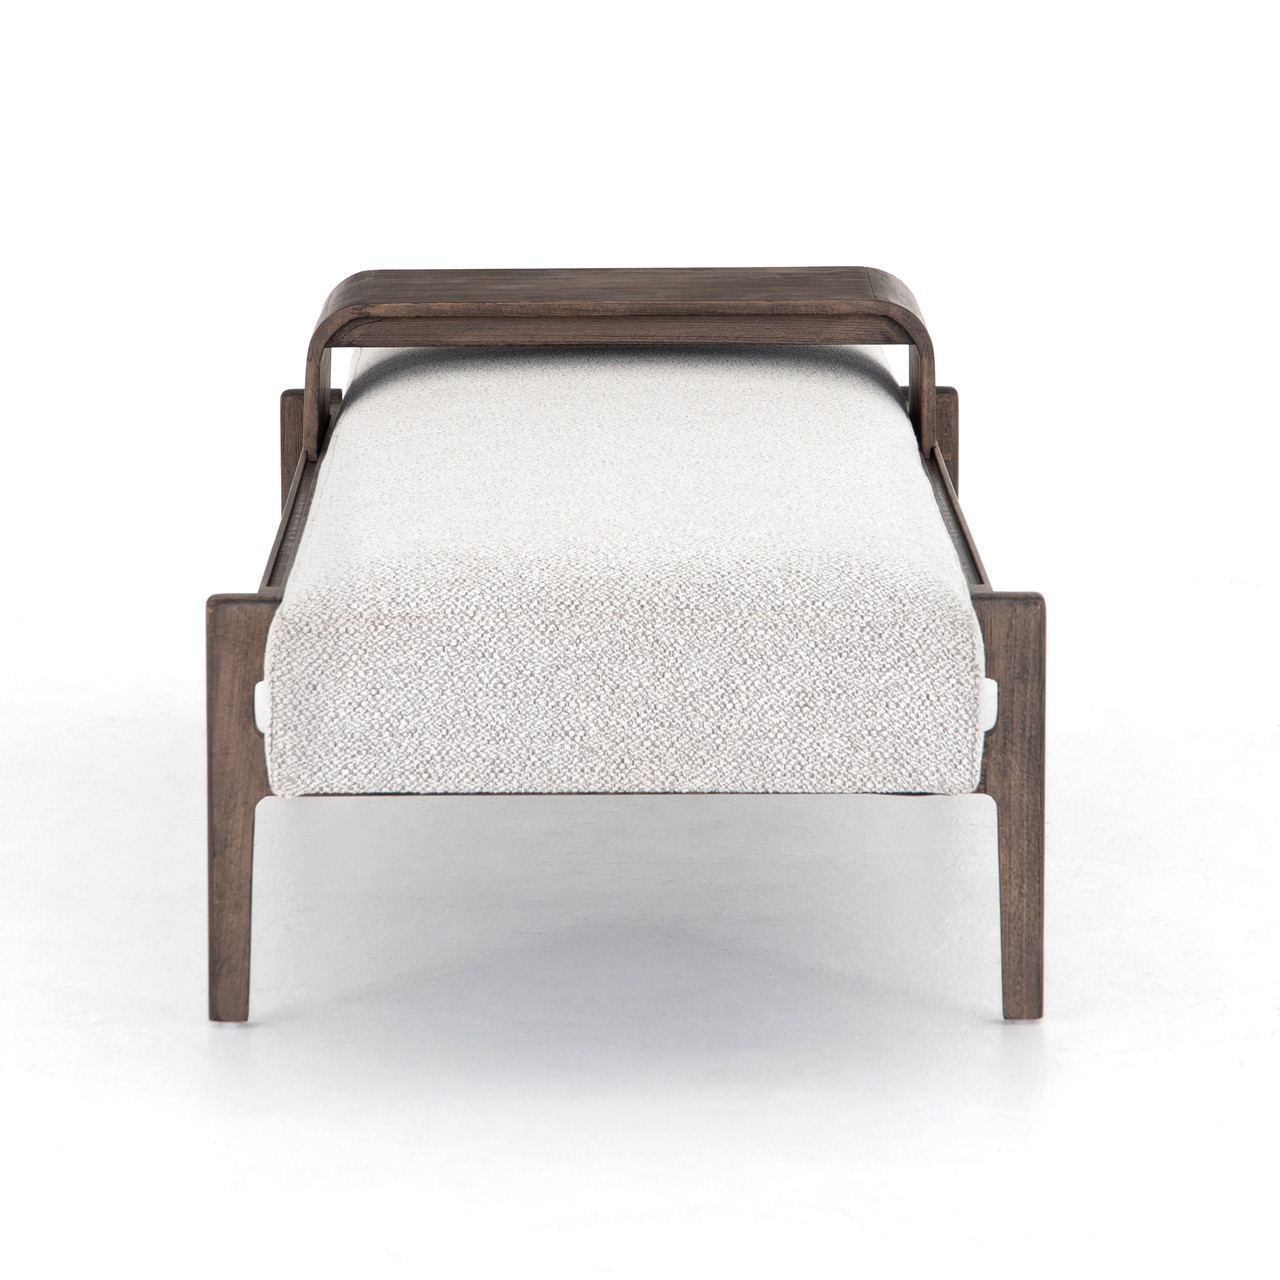 Fawkes Bench-Vintage Sienna